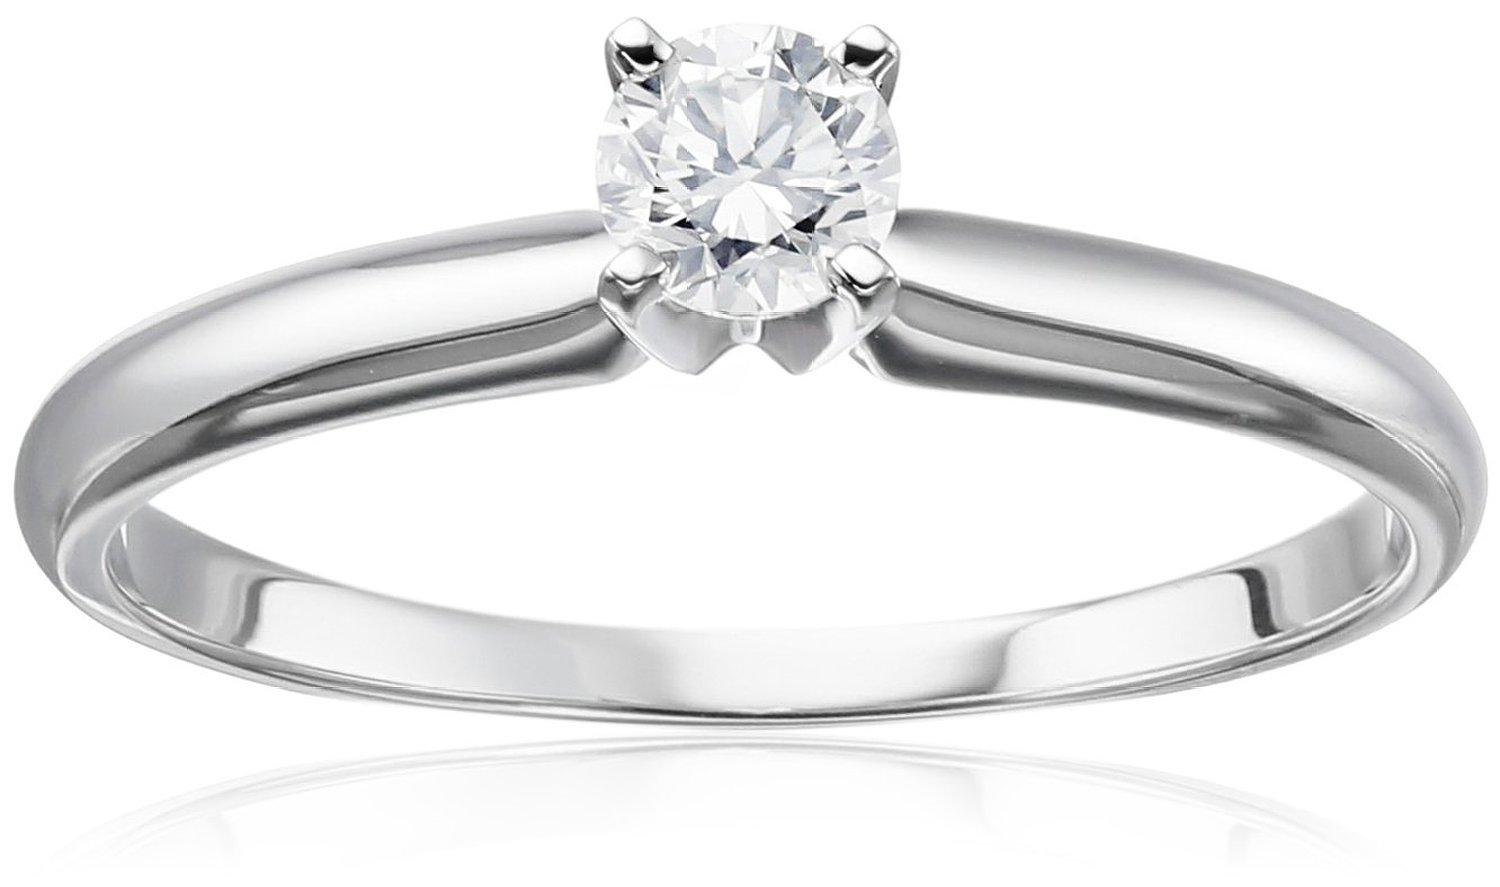 14k White Gold Round Solitaire Diamond Engagement Ring (1/4 cttw, H-I Color, I2-I3 Clarity)   Amazon.com